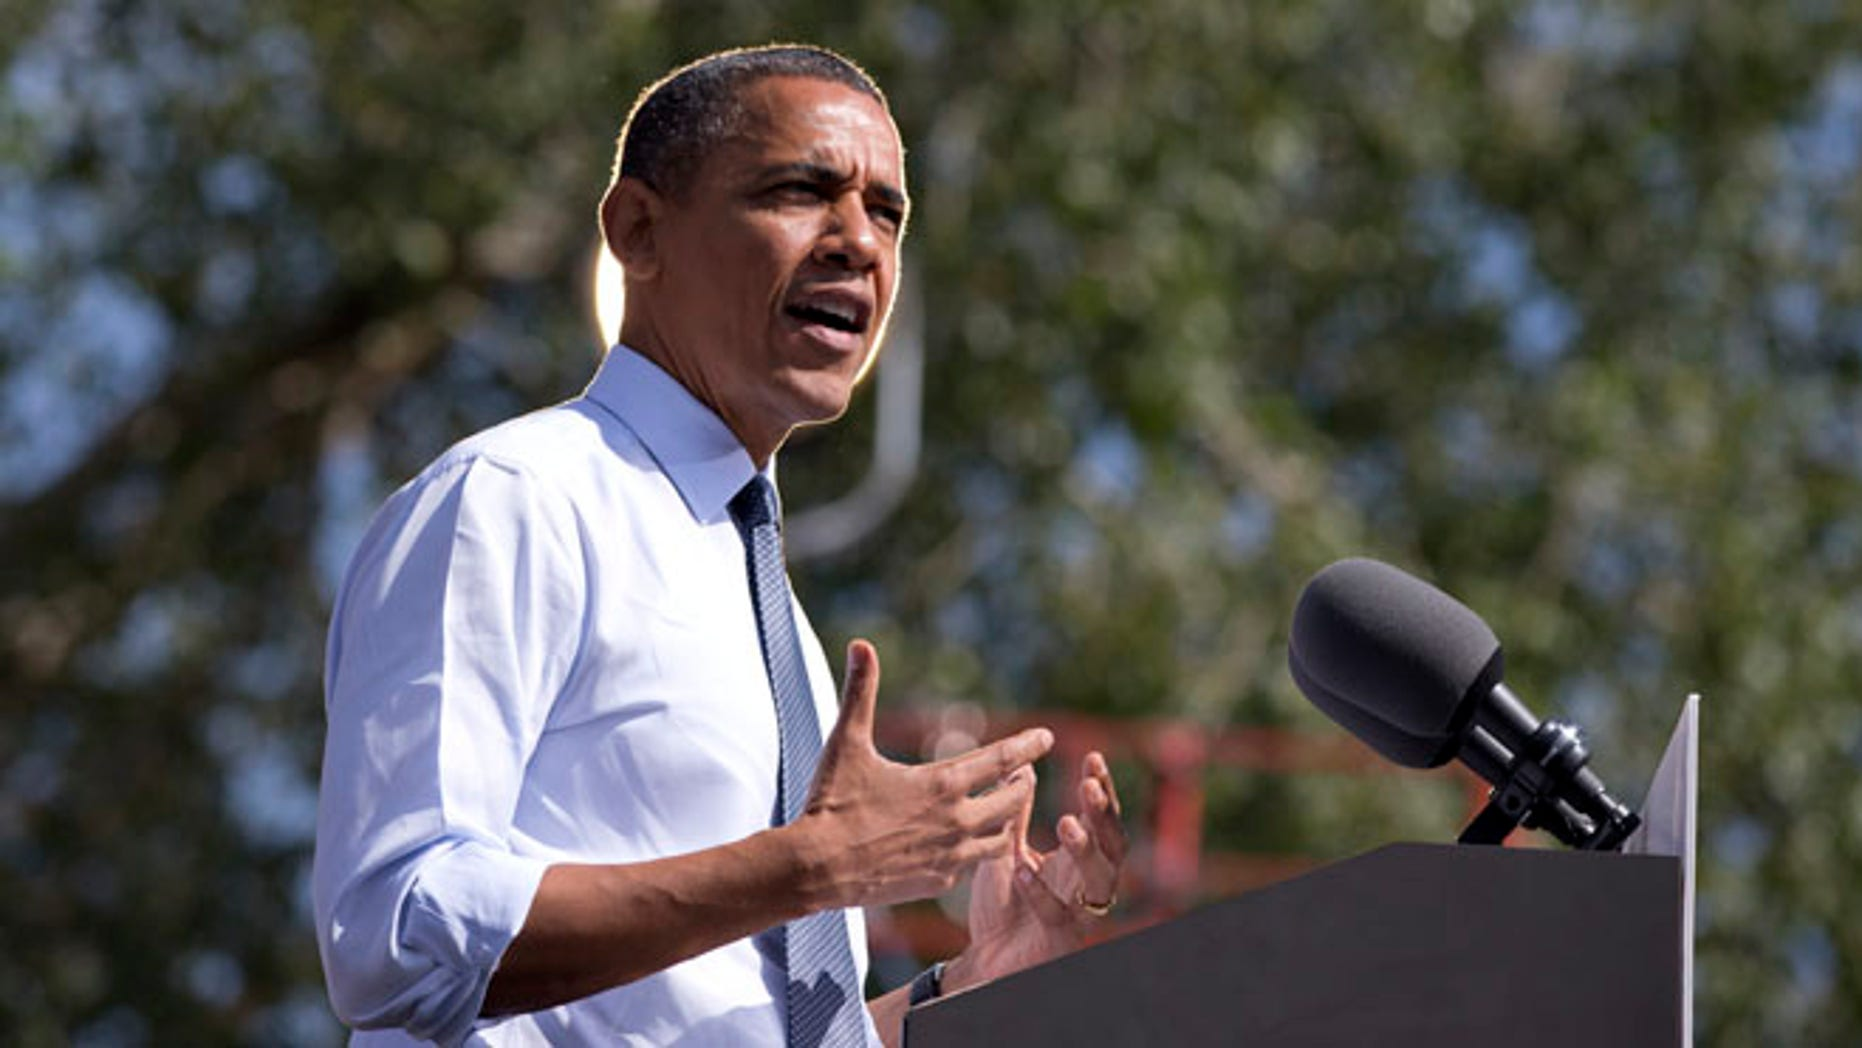 FILE: Sept. 13, 2012: President Obama speaks during a campaign event in Golden,  Colo.